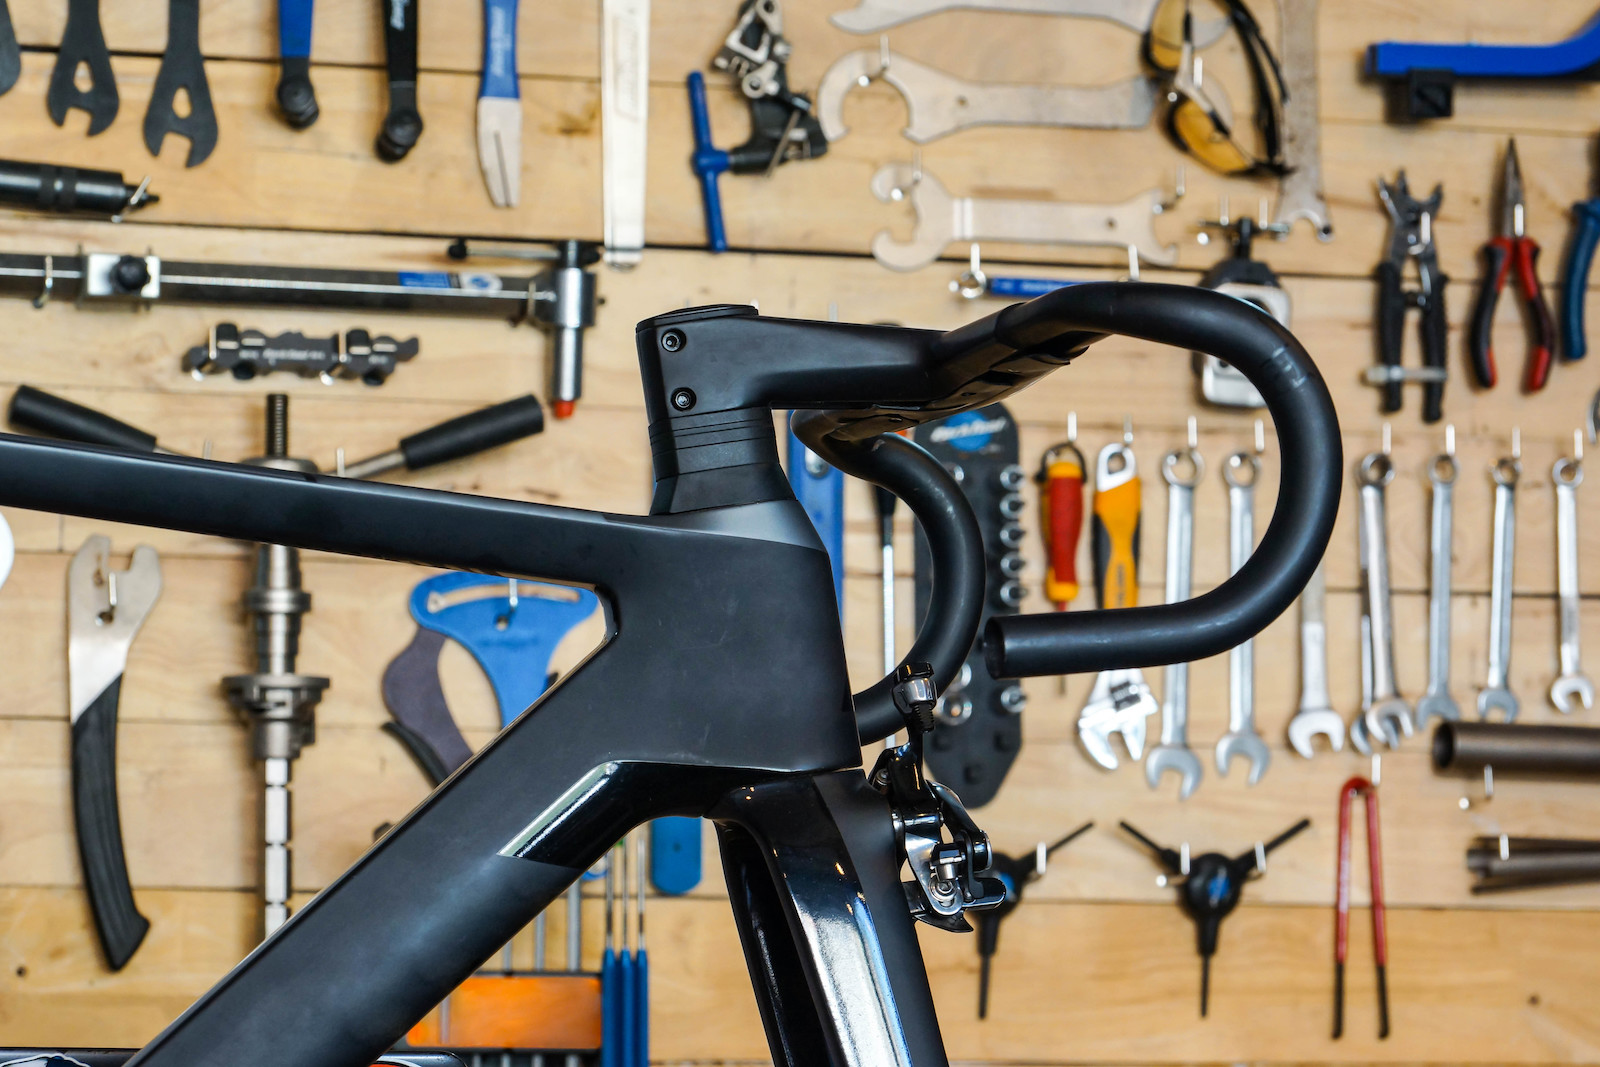 Spruce up for spring with deals on tools and must-have repair items.